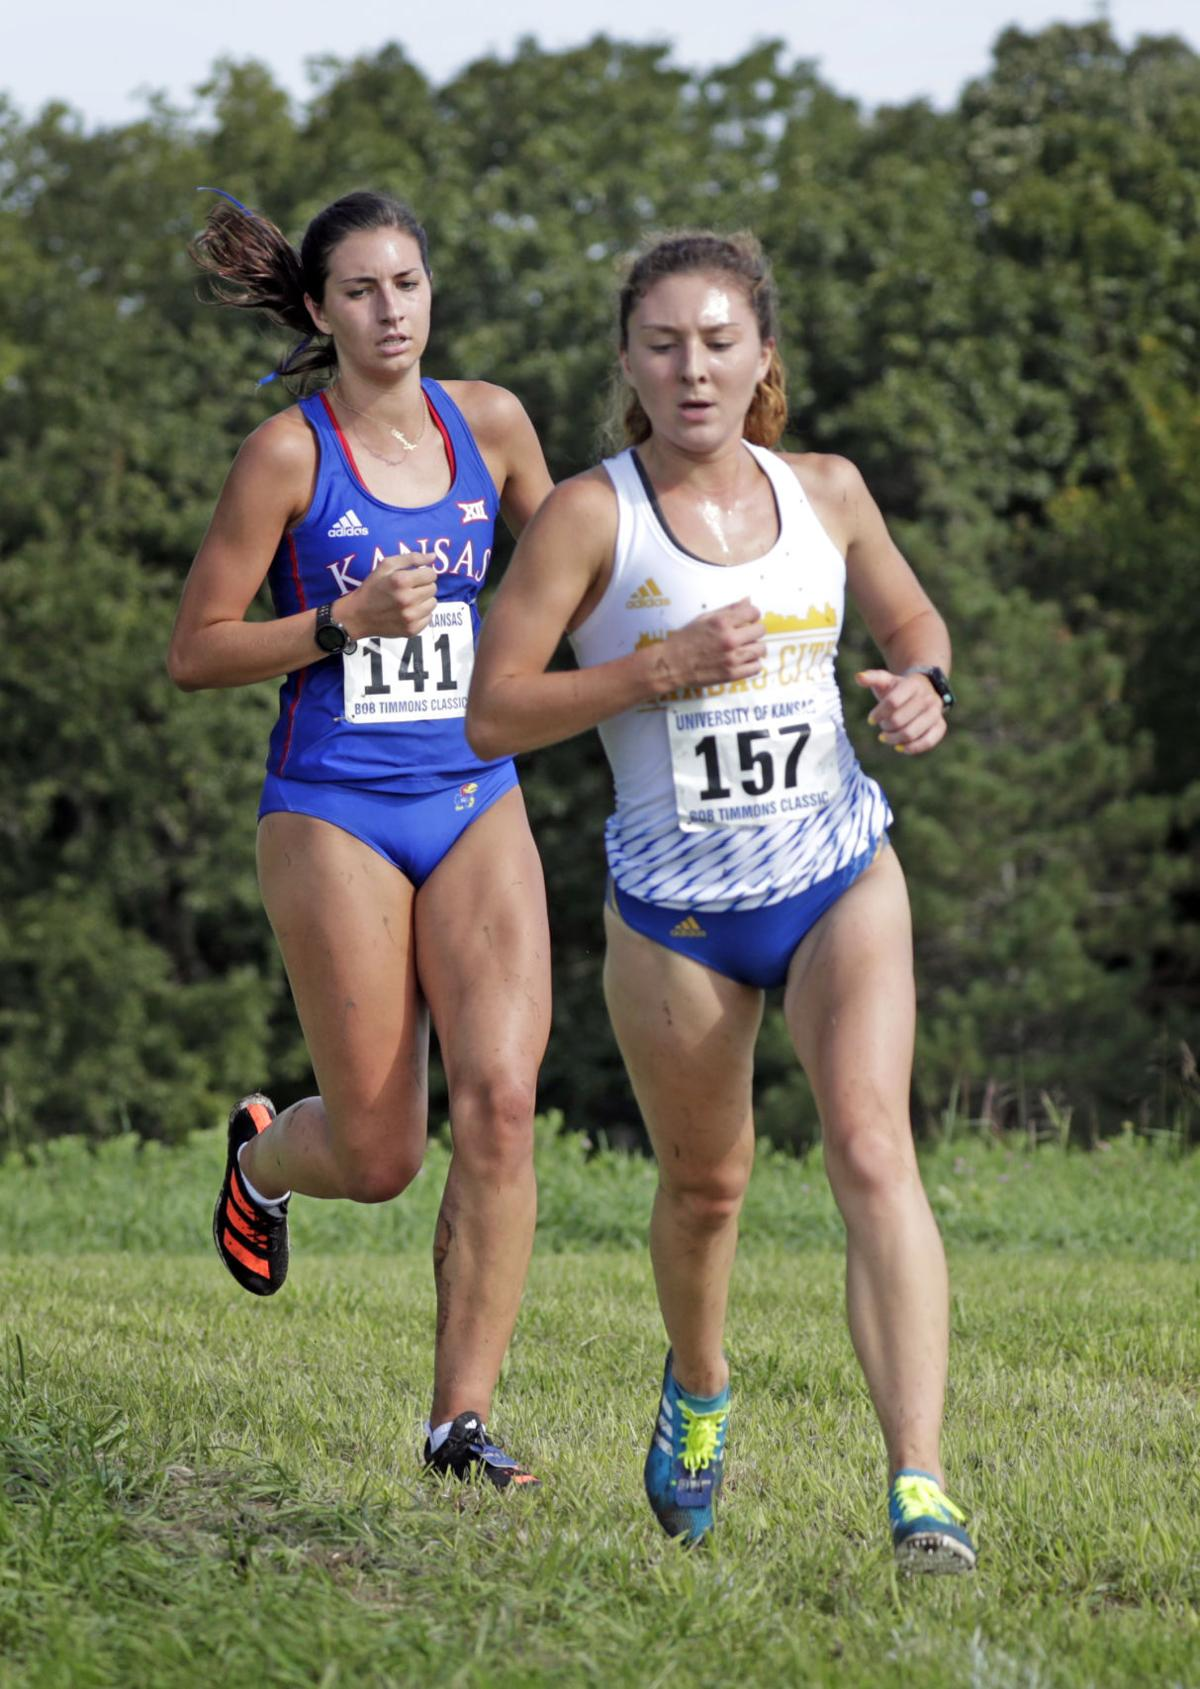 Cross Country Bob Timmons Classic 1